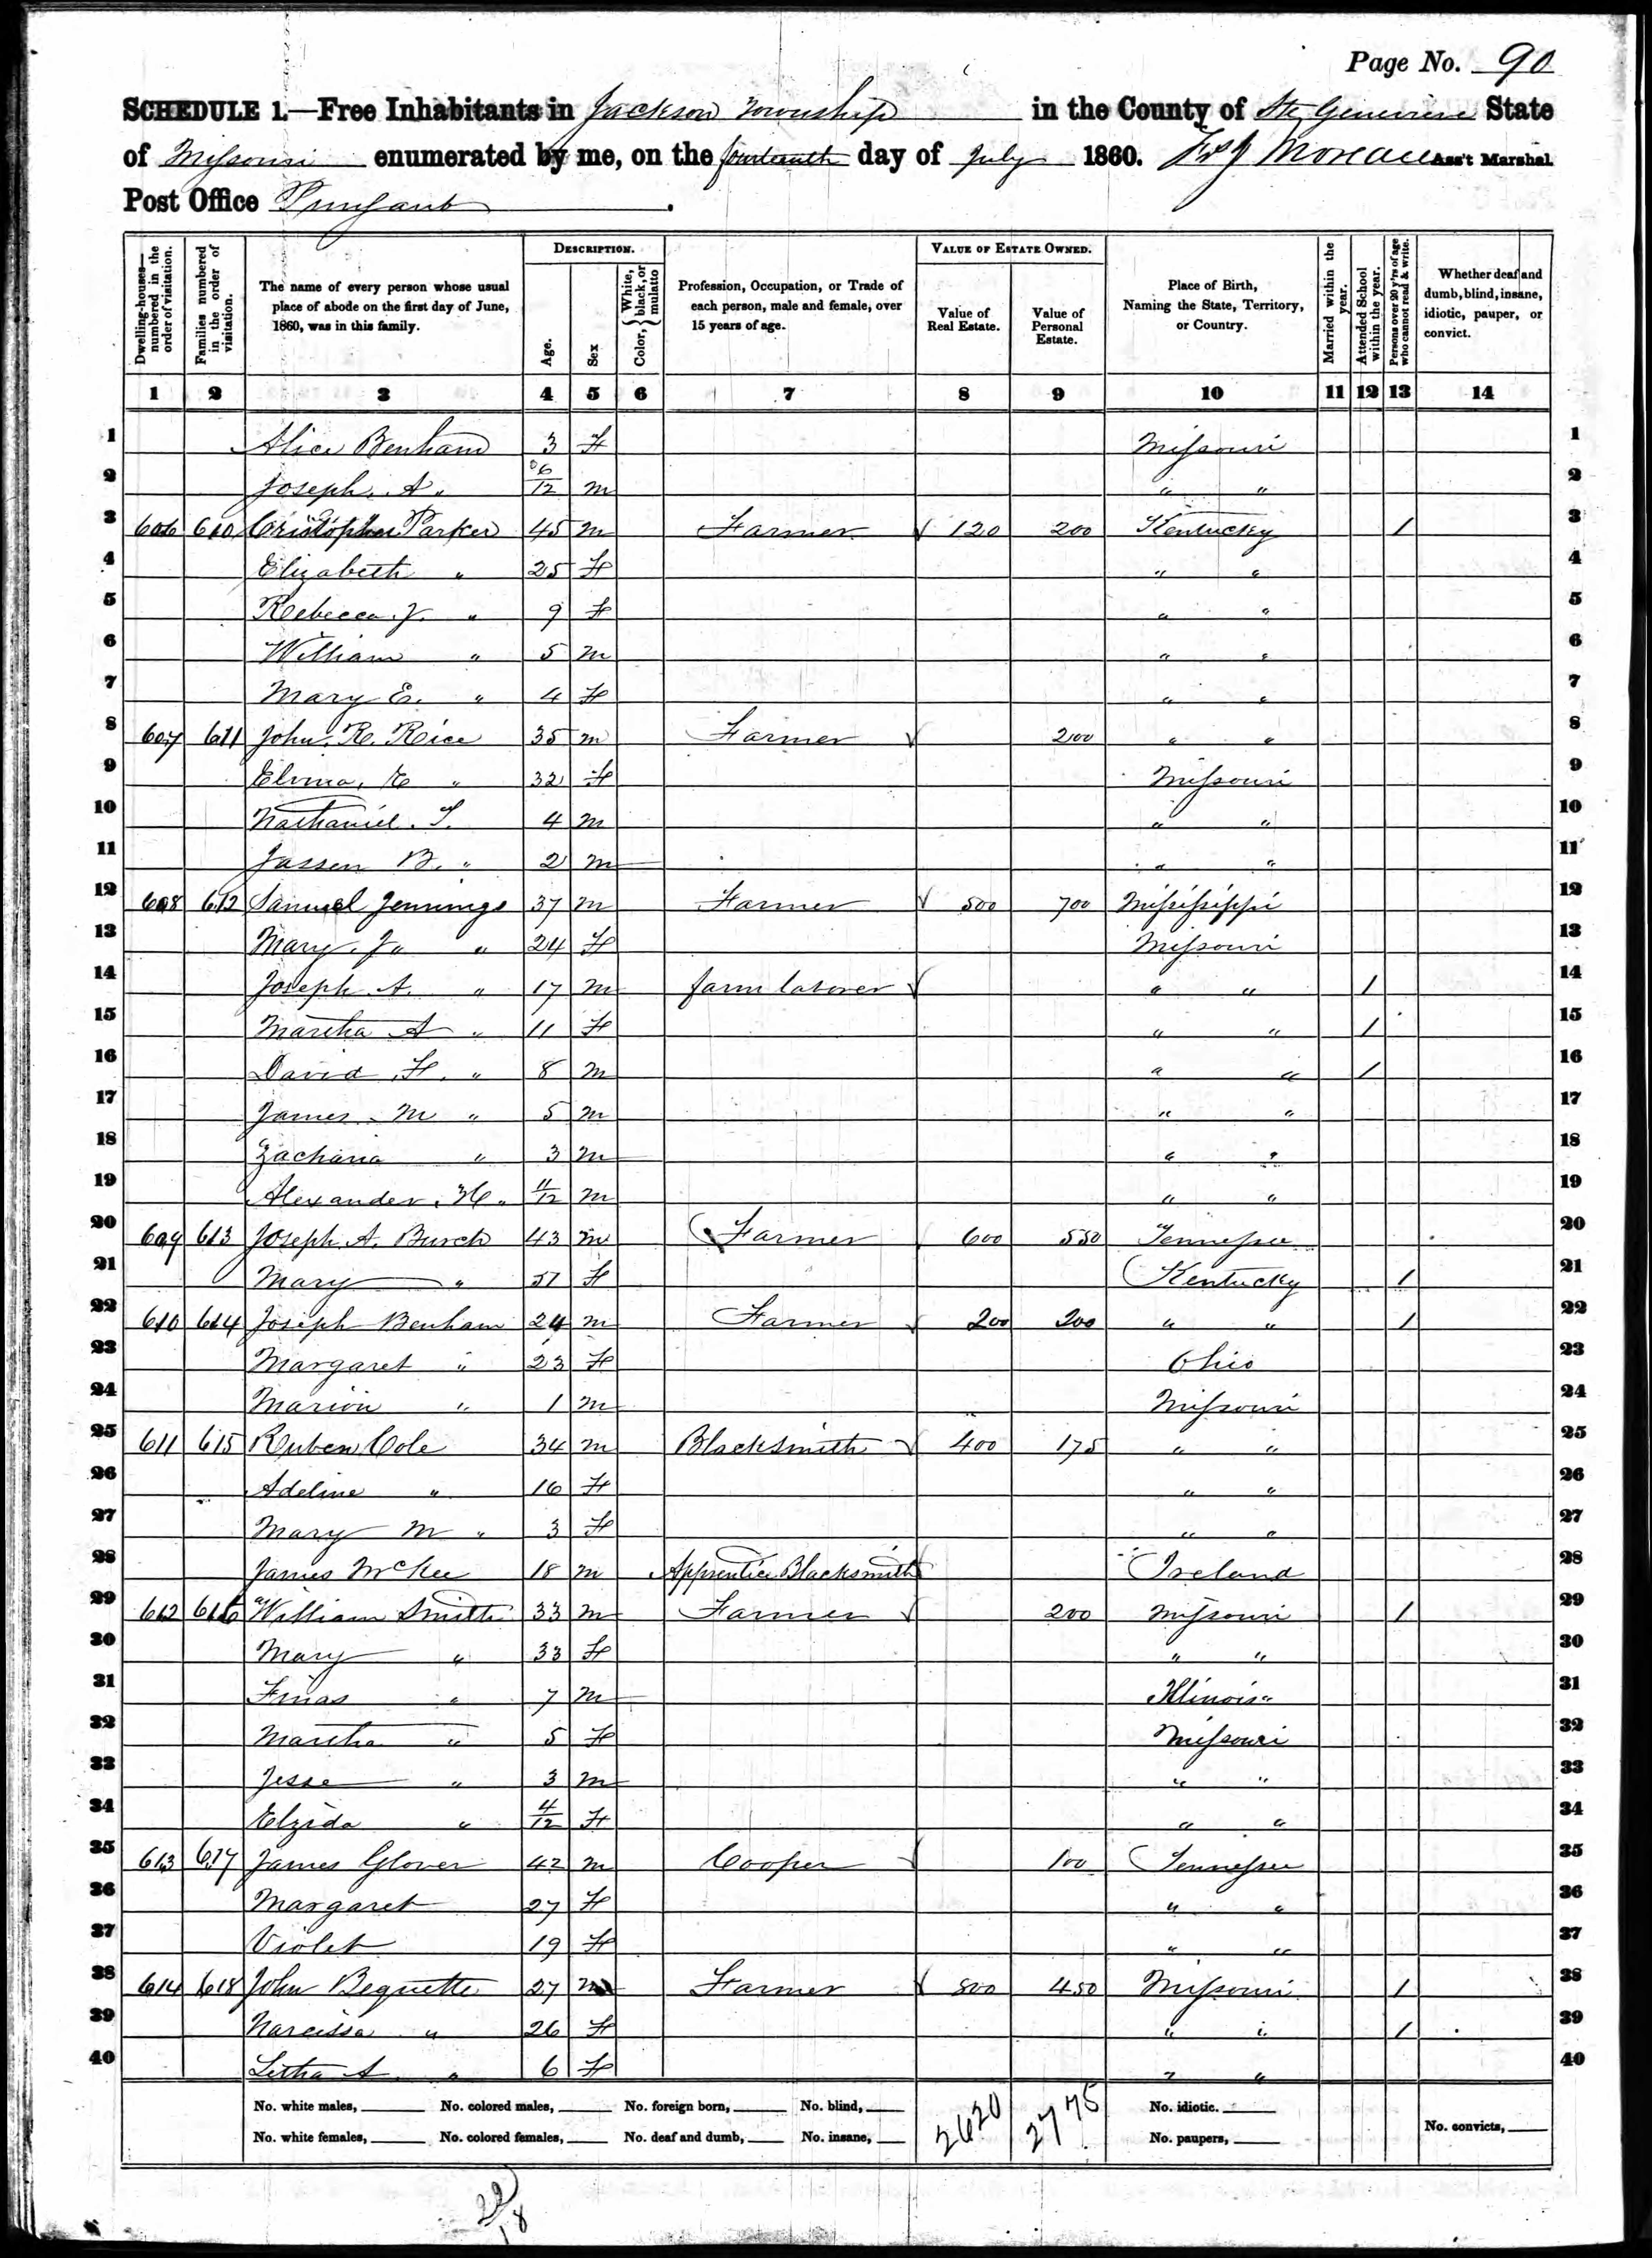 Nathaniel thomas wright and louisa isabelle edwards genealogy which puts his birth date about 1856 the enumerator misspelled his fathers name as john r reice at age 35 born about 1825 aiddatafo Choice Image